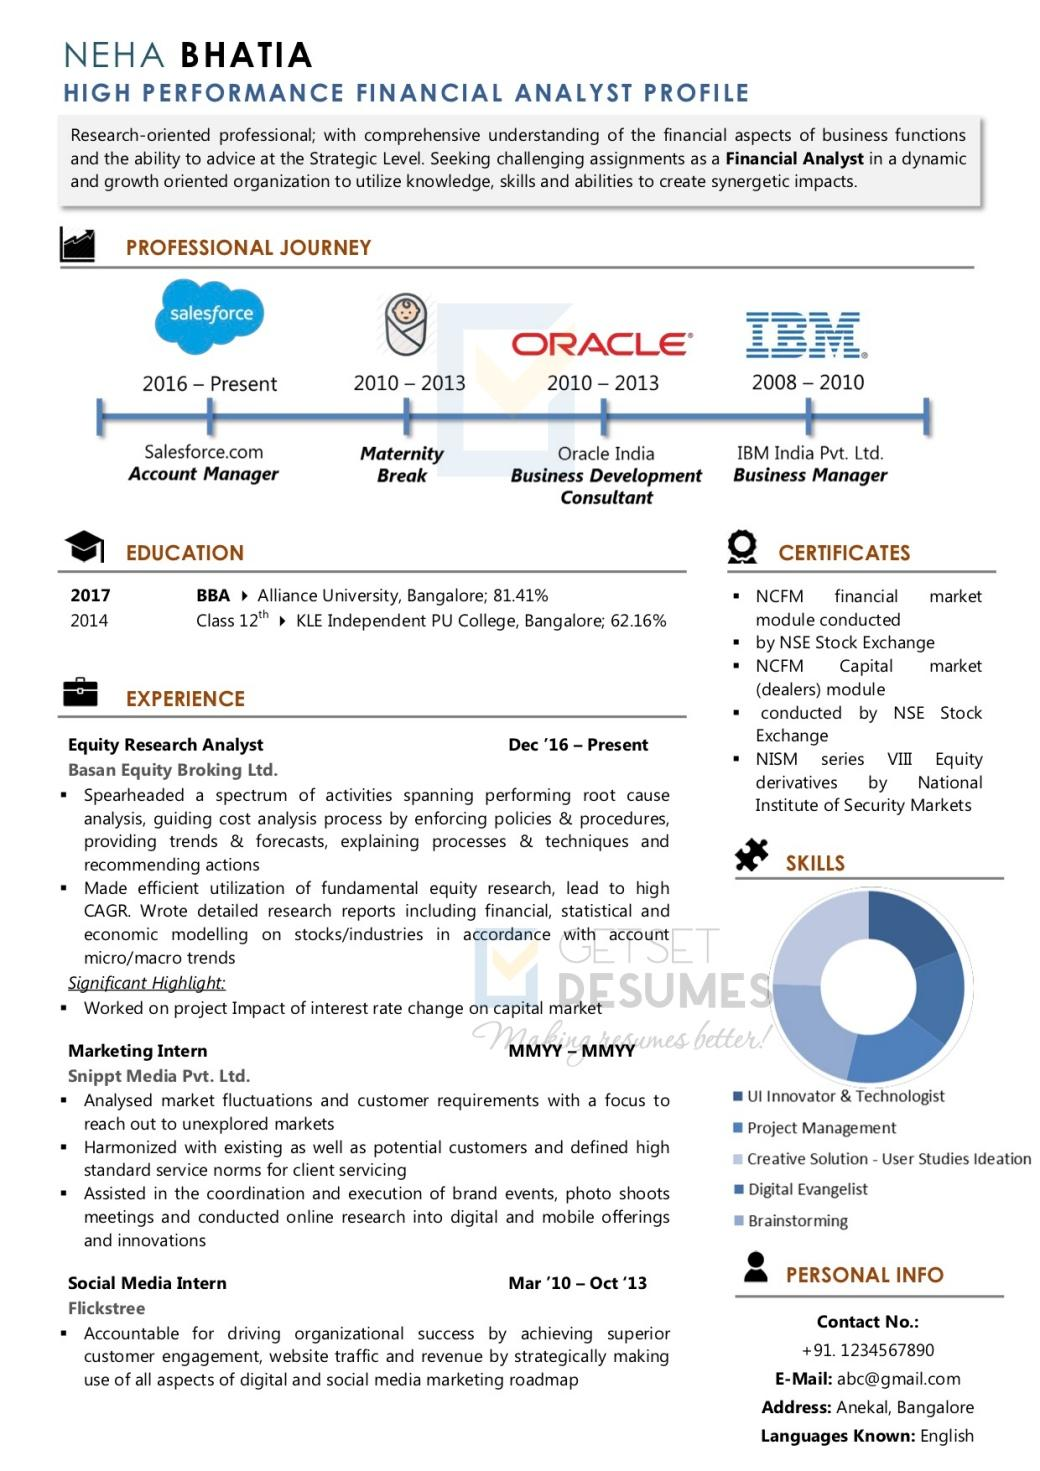 Financial Analyst Resume Sample, Equity Analyst Resume Sample, Infographic Resume Sample, Resume Sample after Career Break